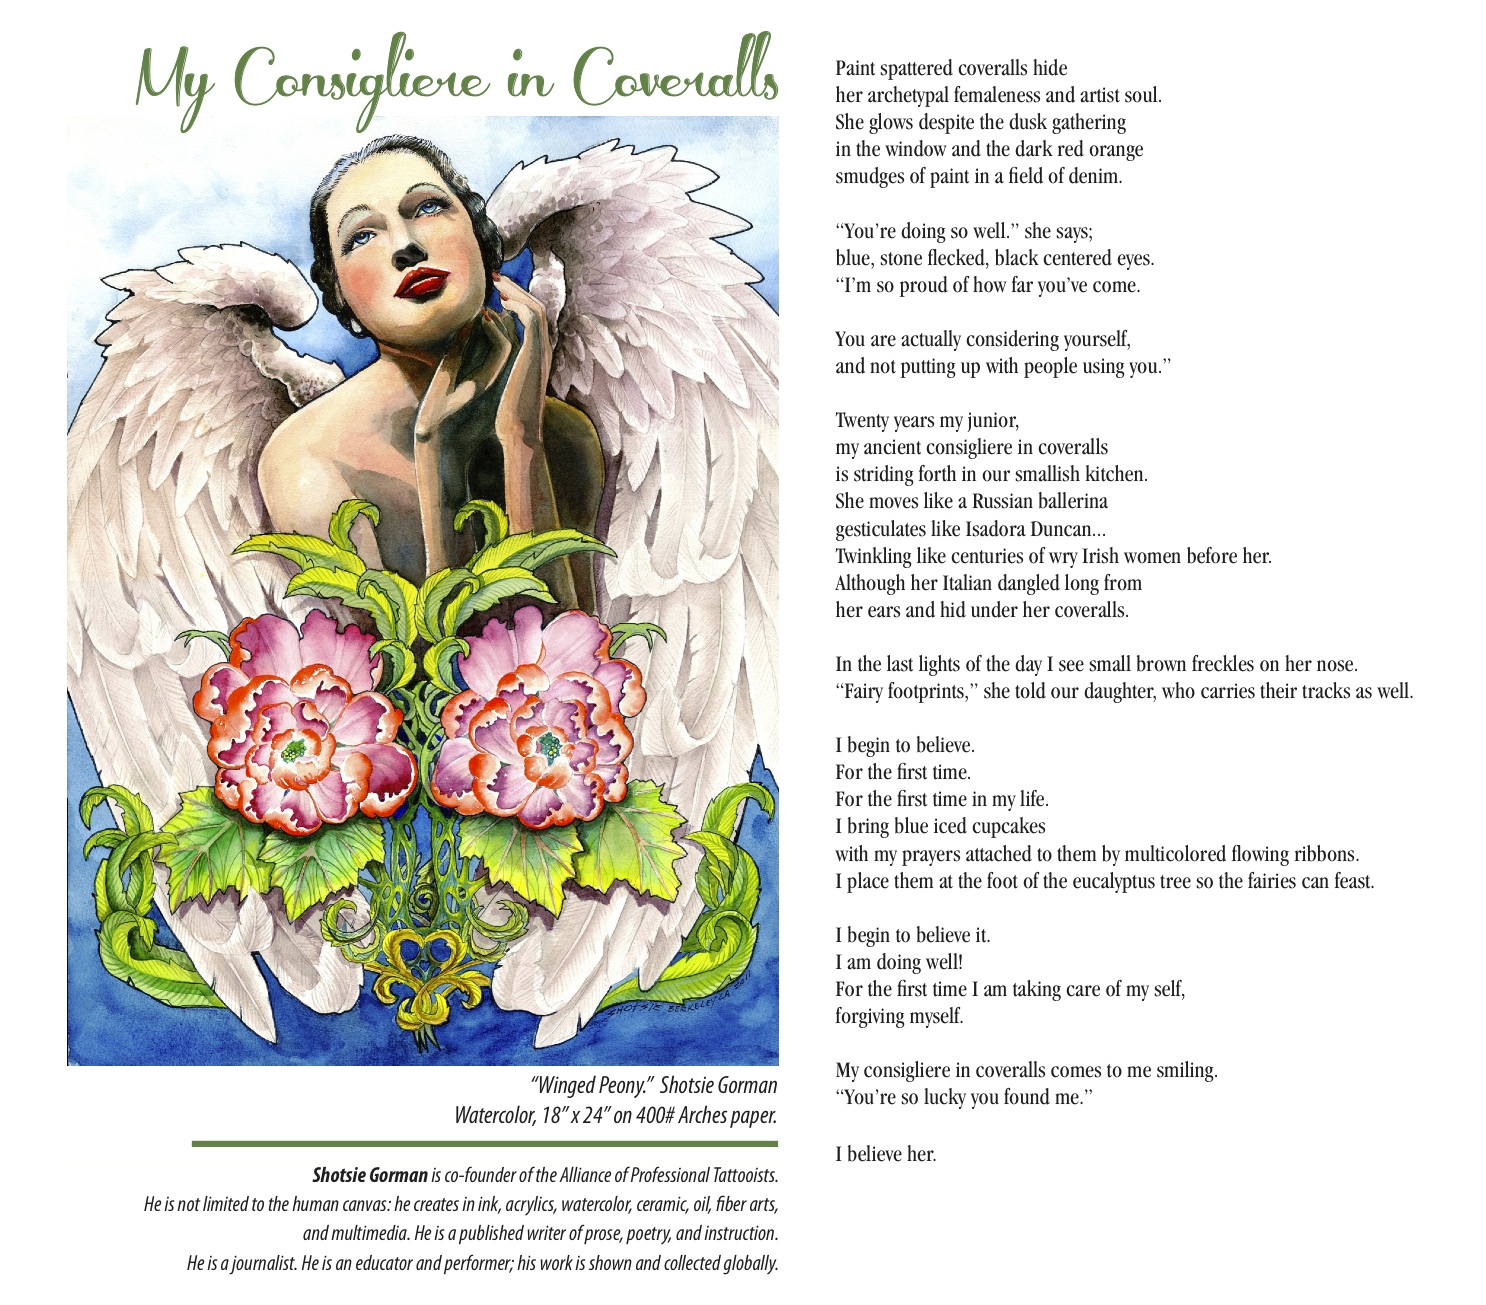 Shotsie Gorman poetry Consigliere in Coveralls